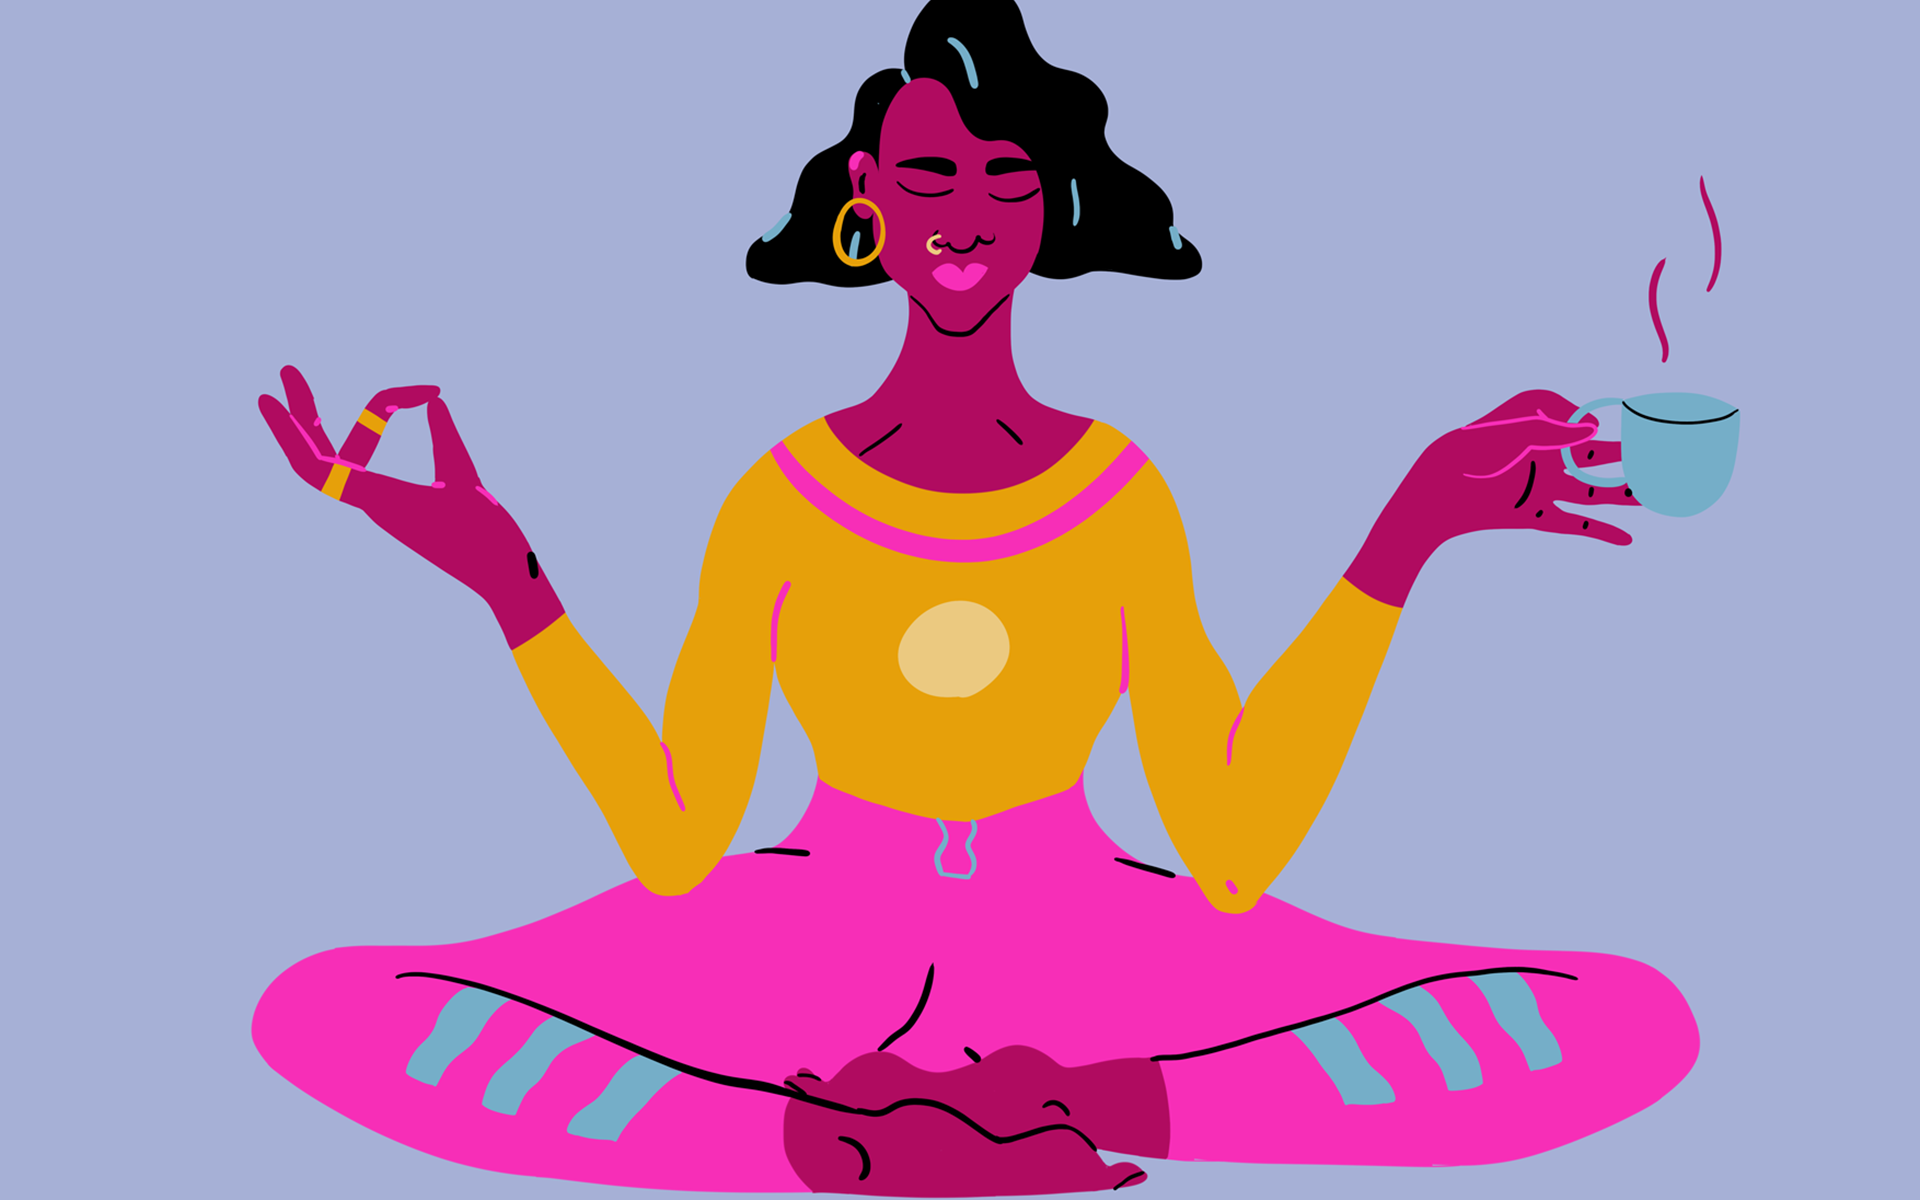 A black woman in a Yoga pose